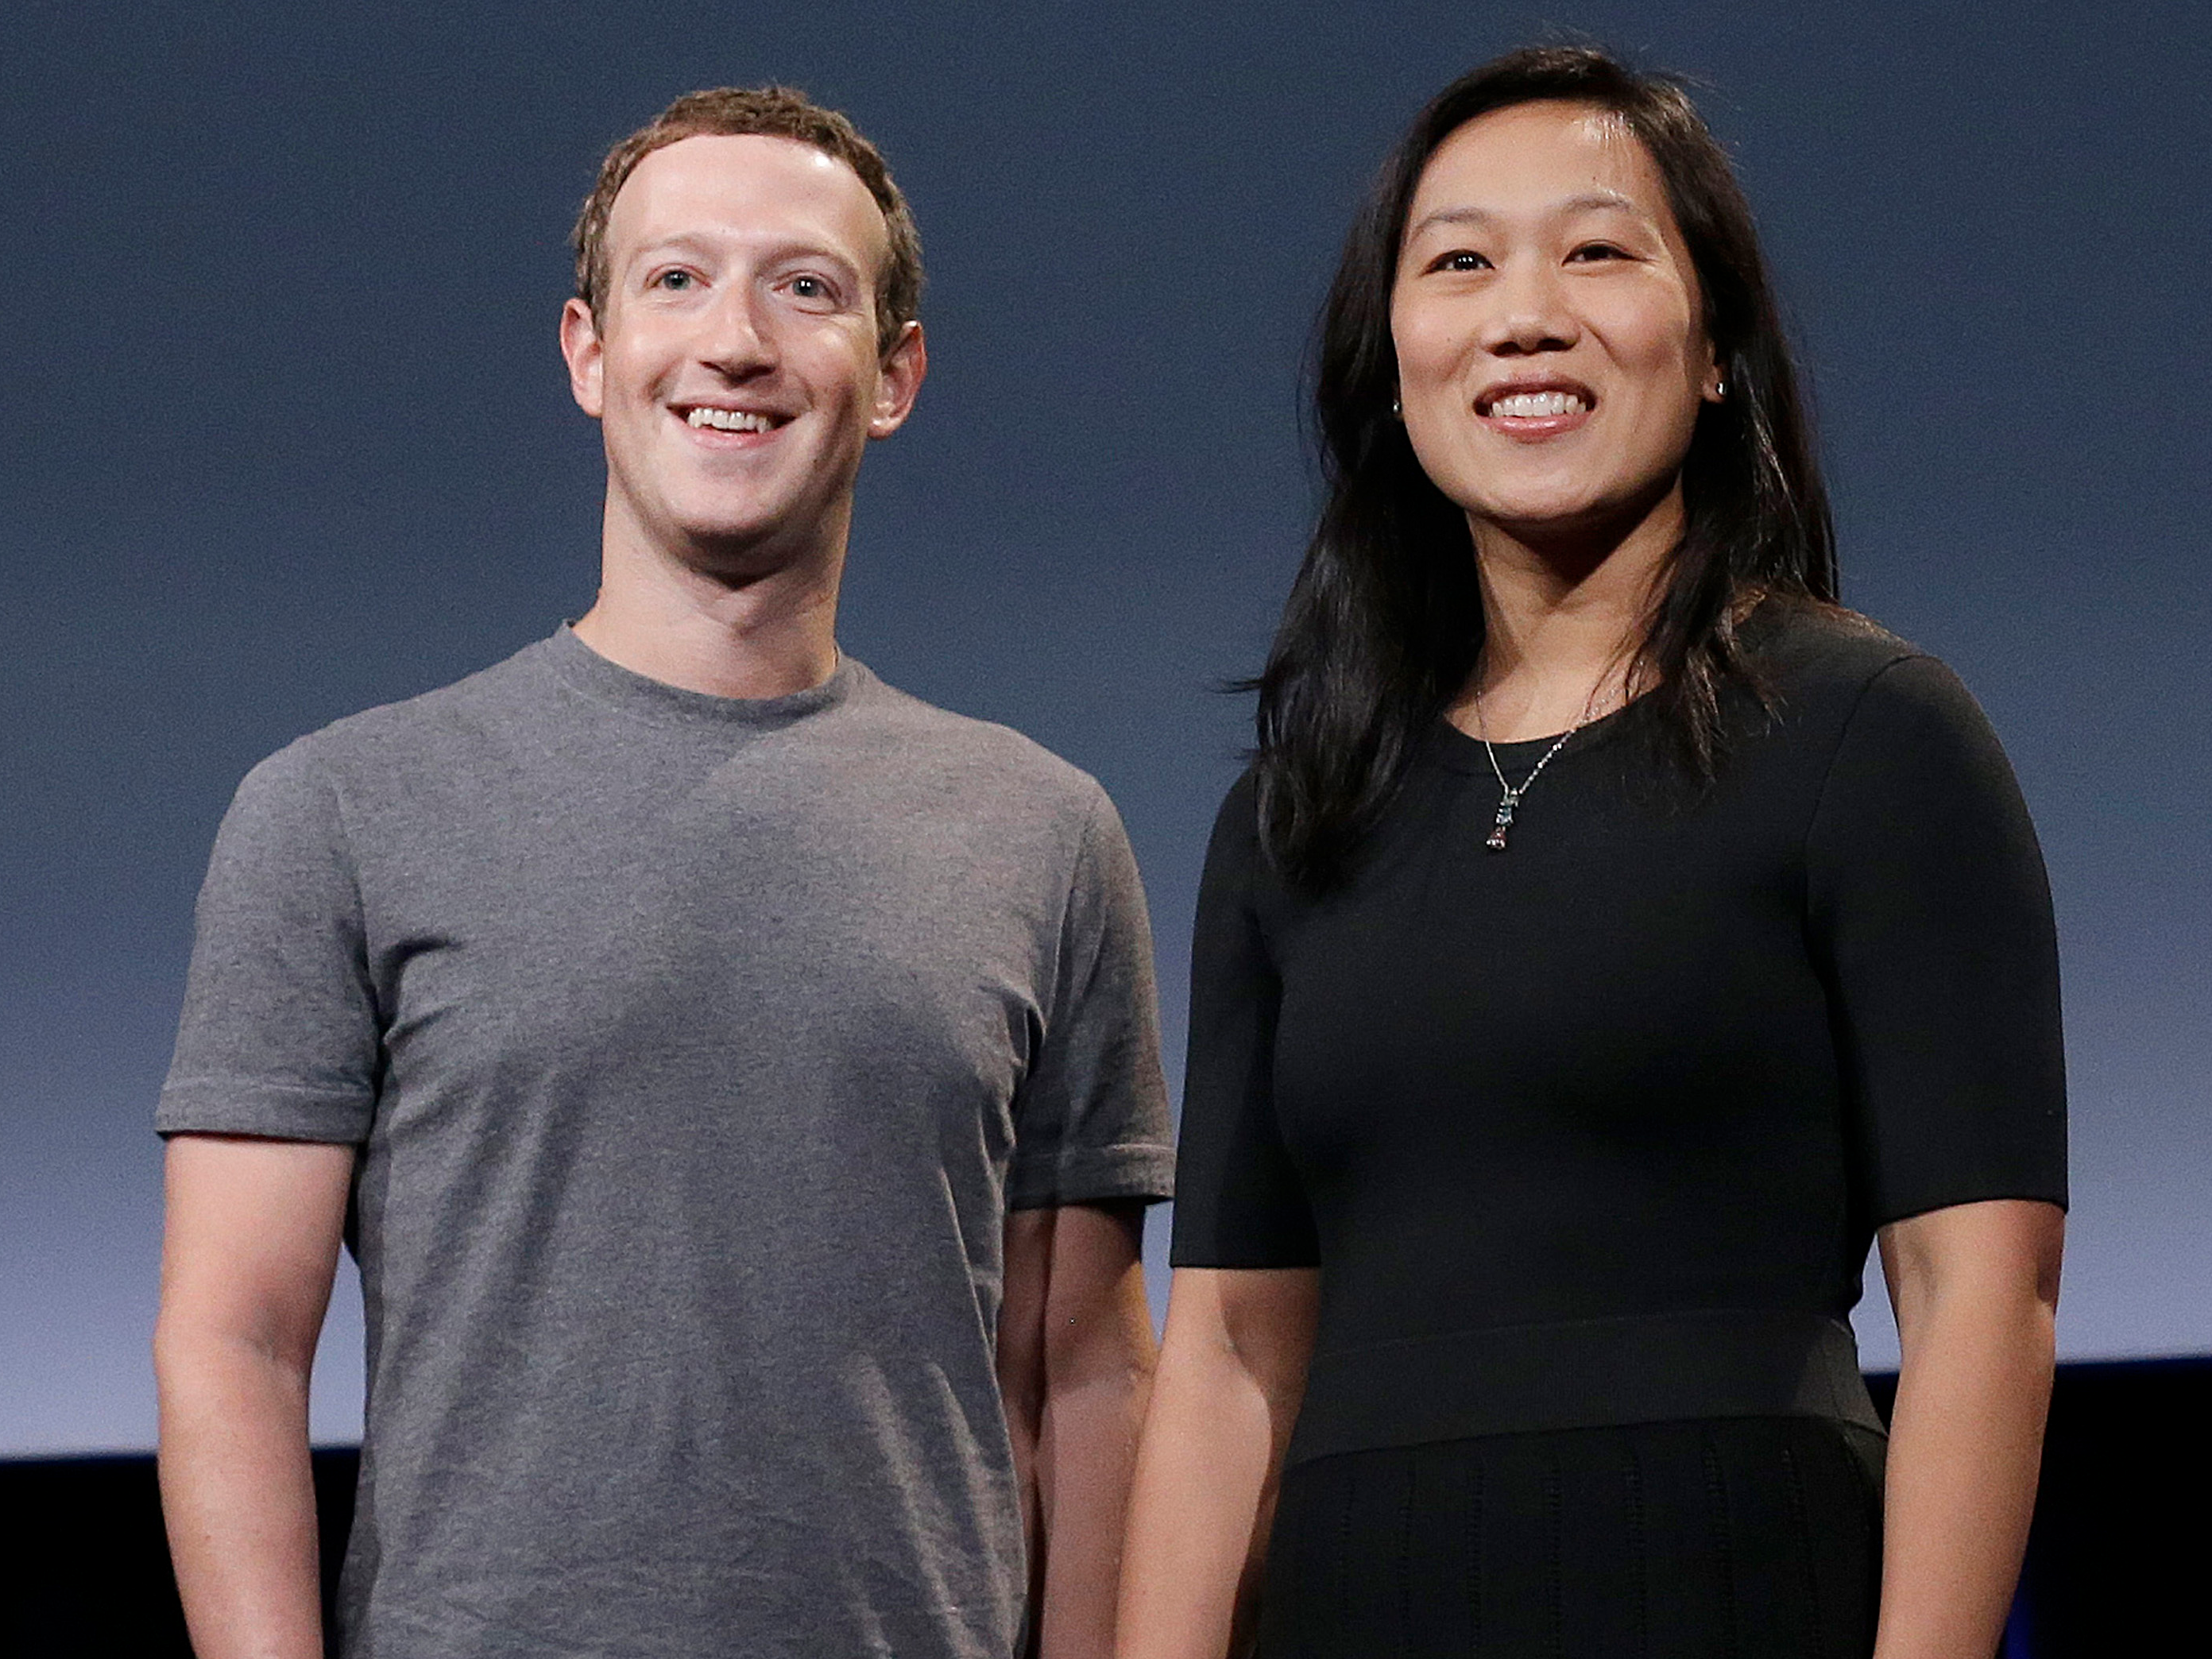 mark-zuckerberg-will-take-two-months-off-when-his-second-daughter-is-born